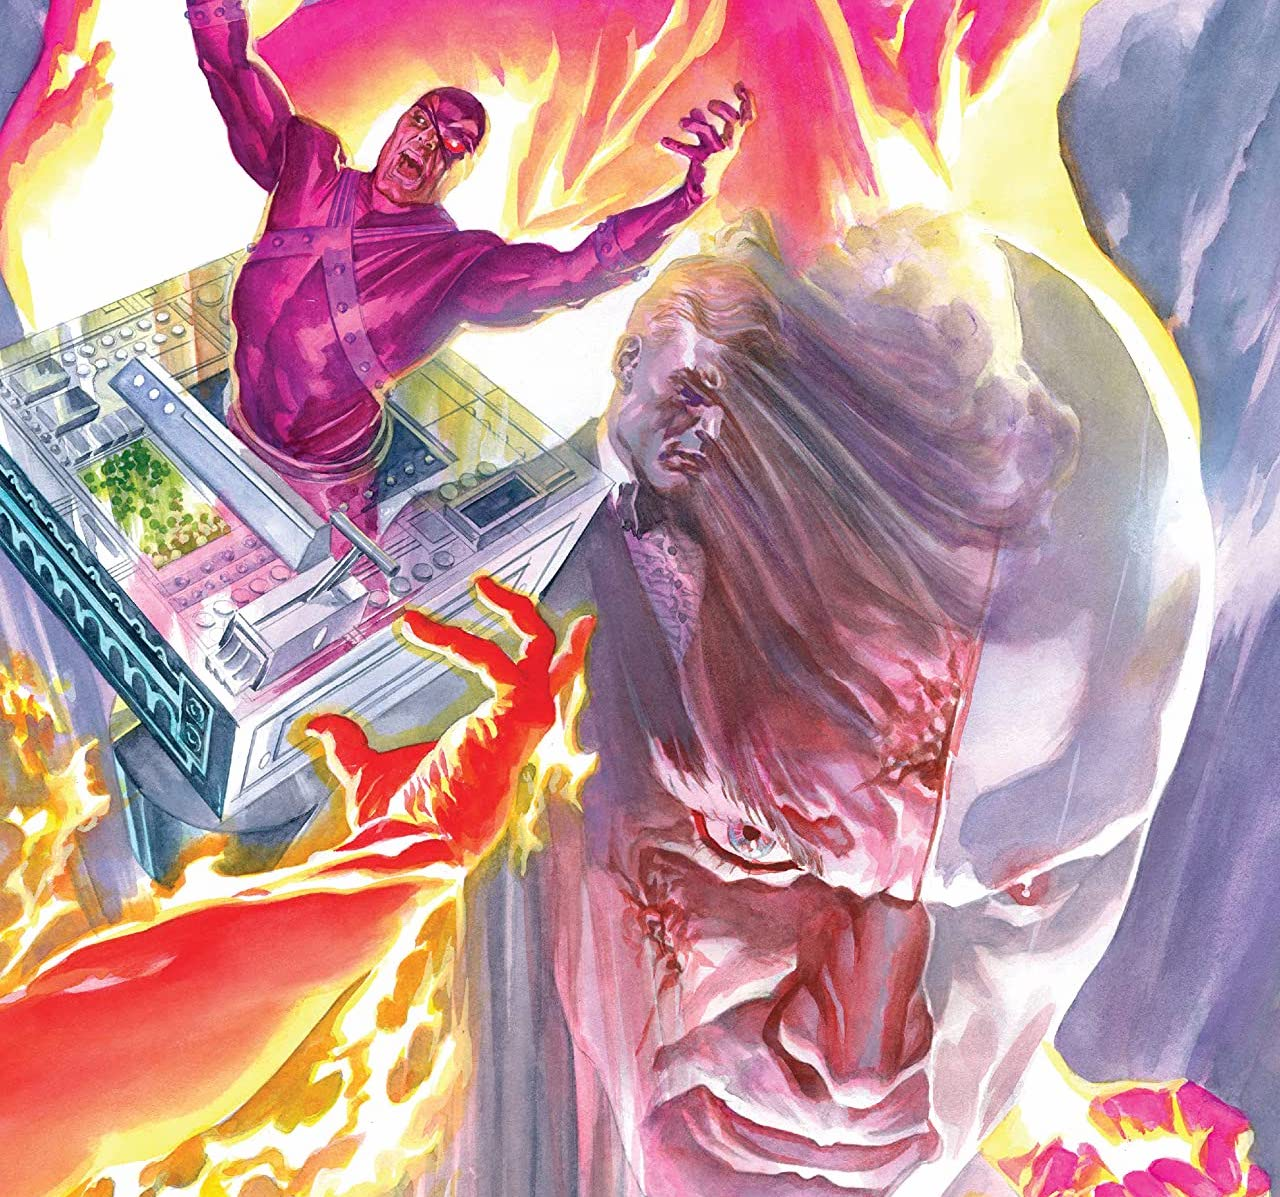 'Iron Man' #9 features the rise and fall (and fall again) of Korvac